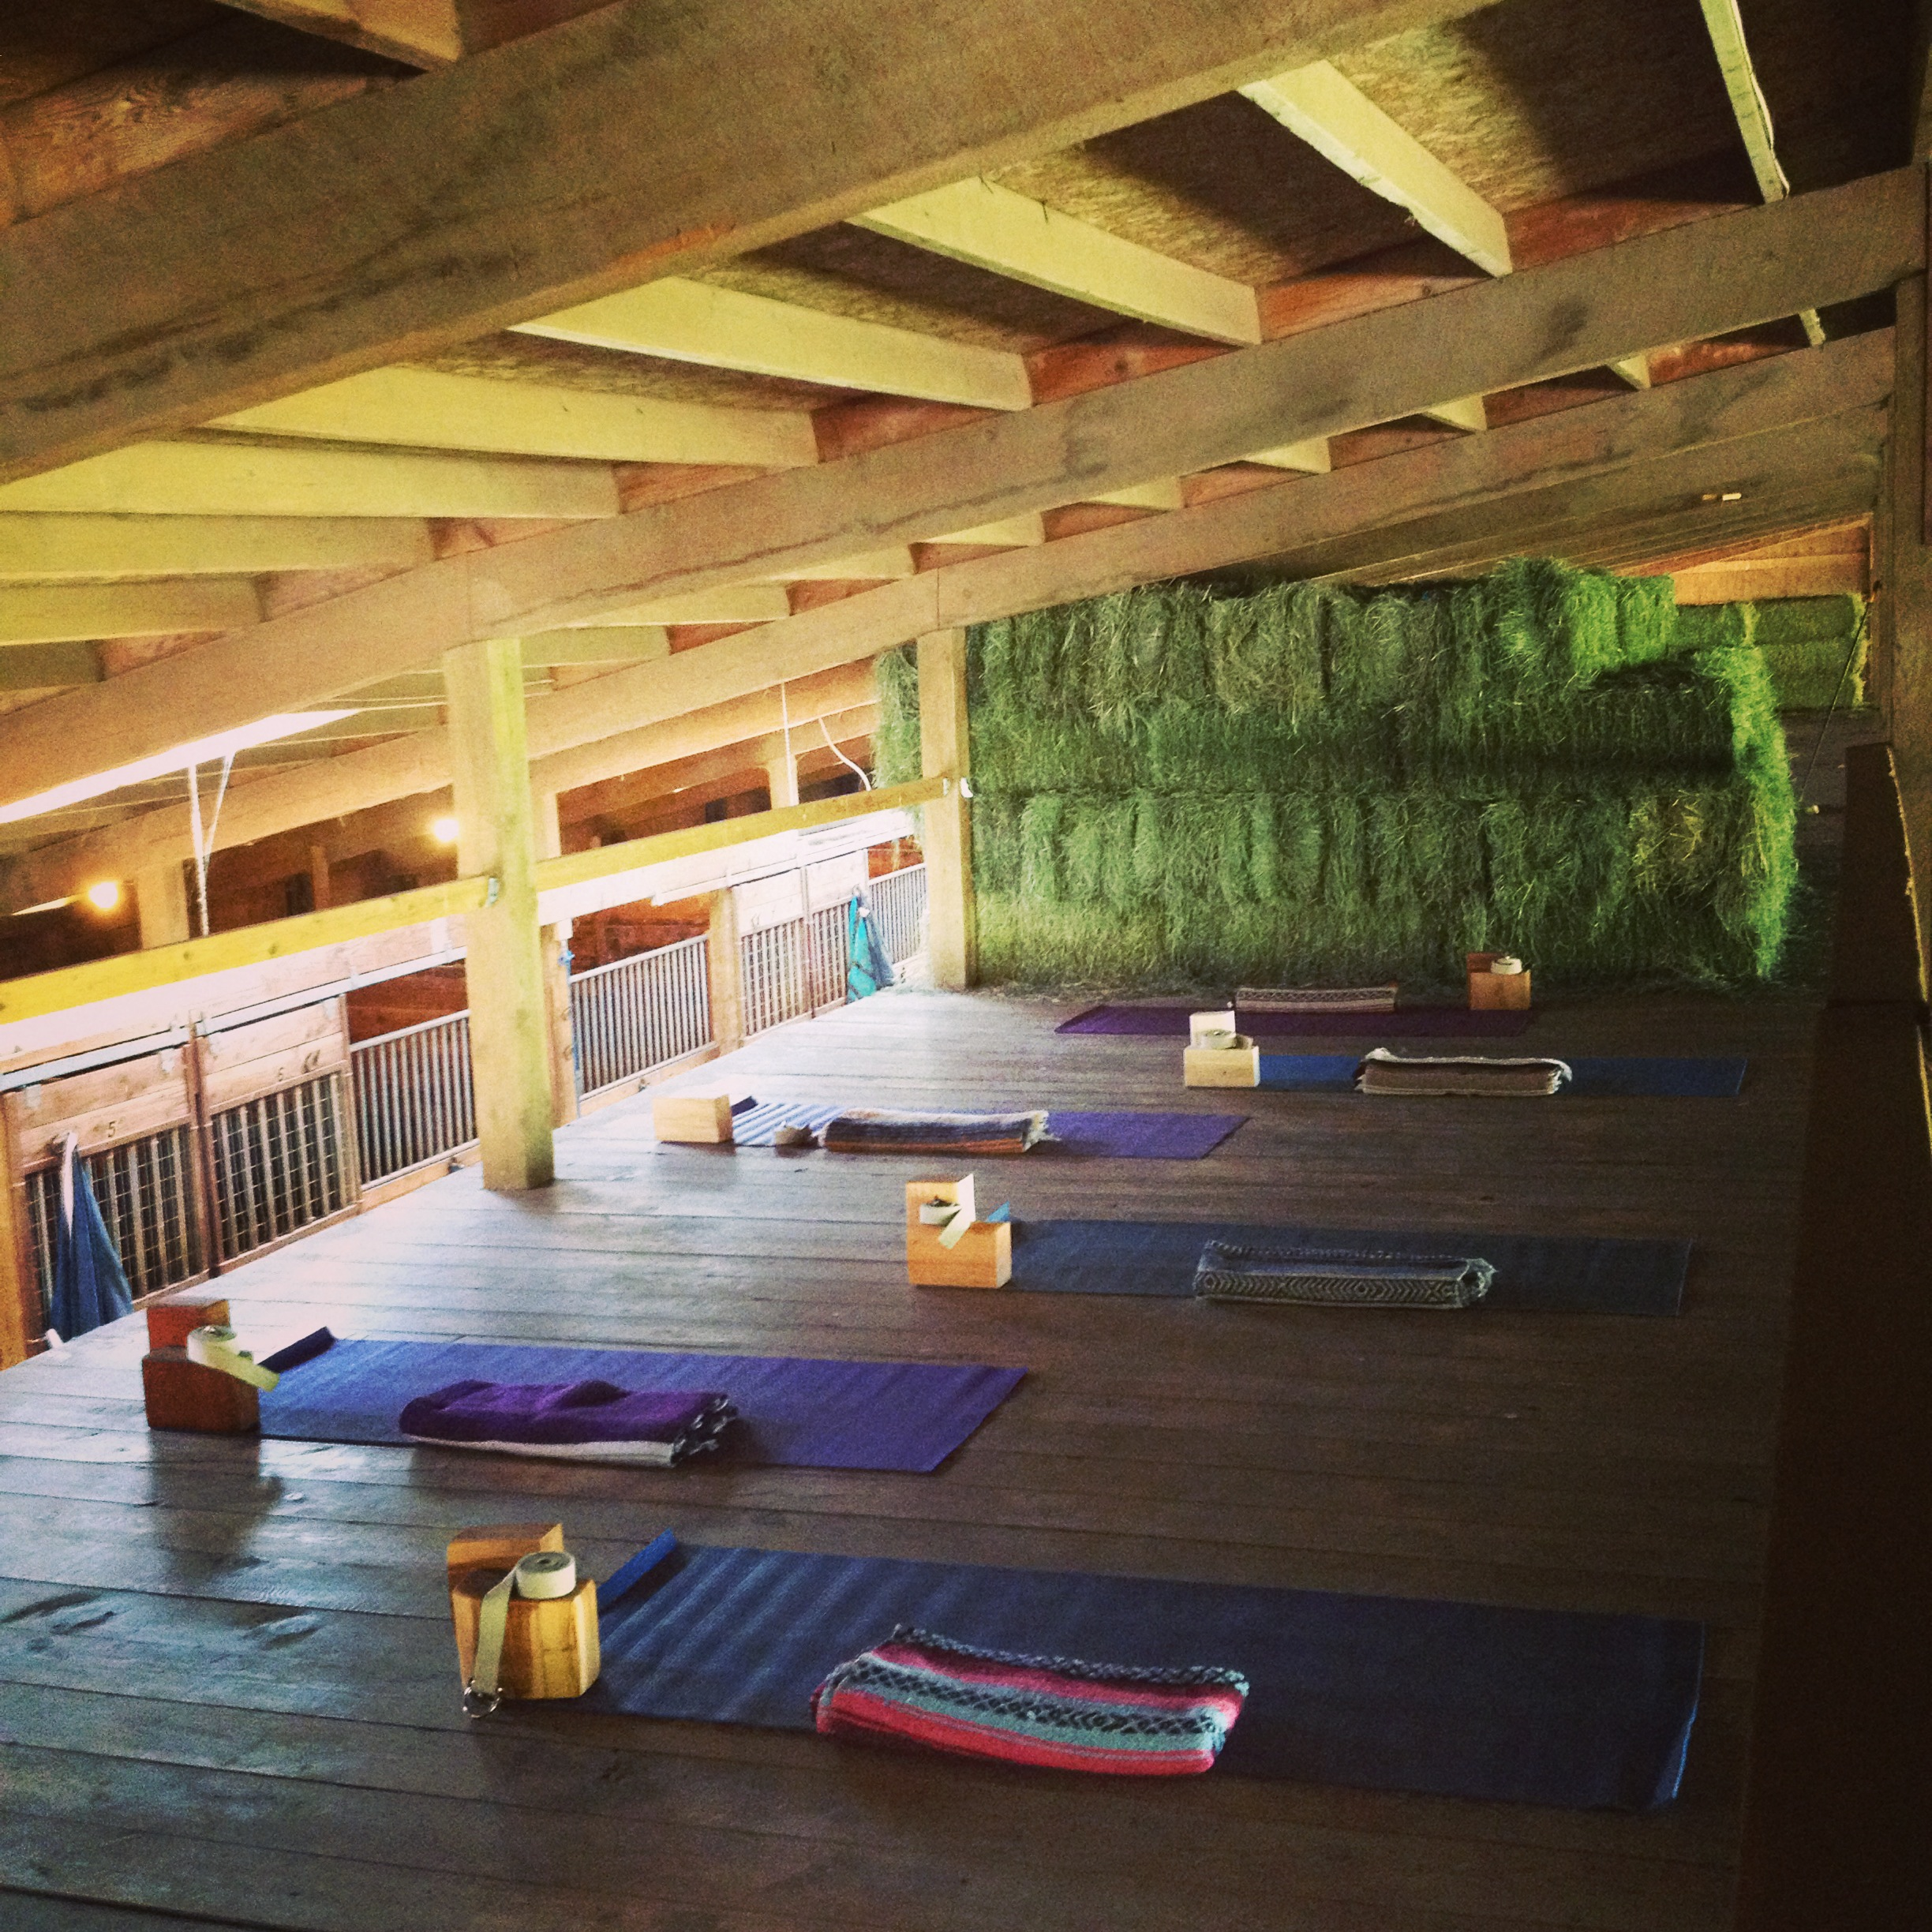 Hayloft Yoga ~ Your Mat is Waiting!